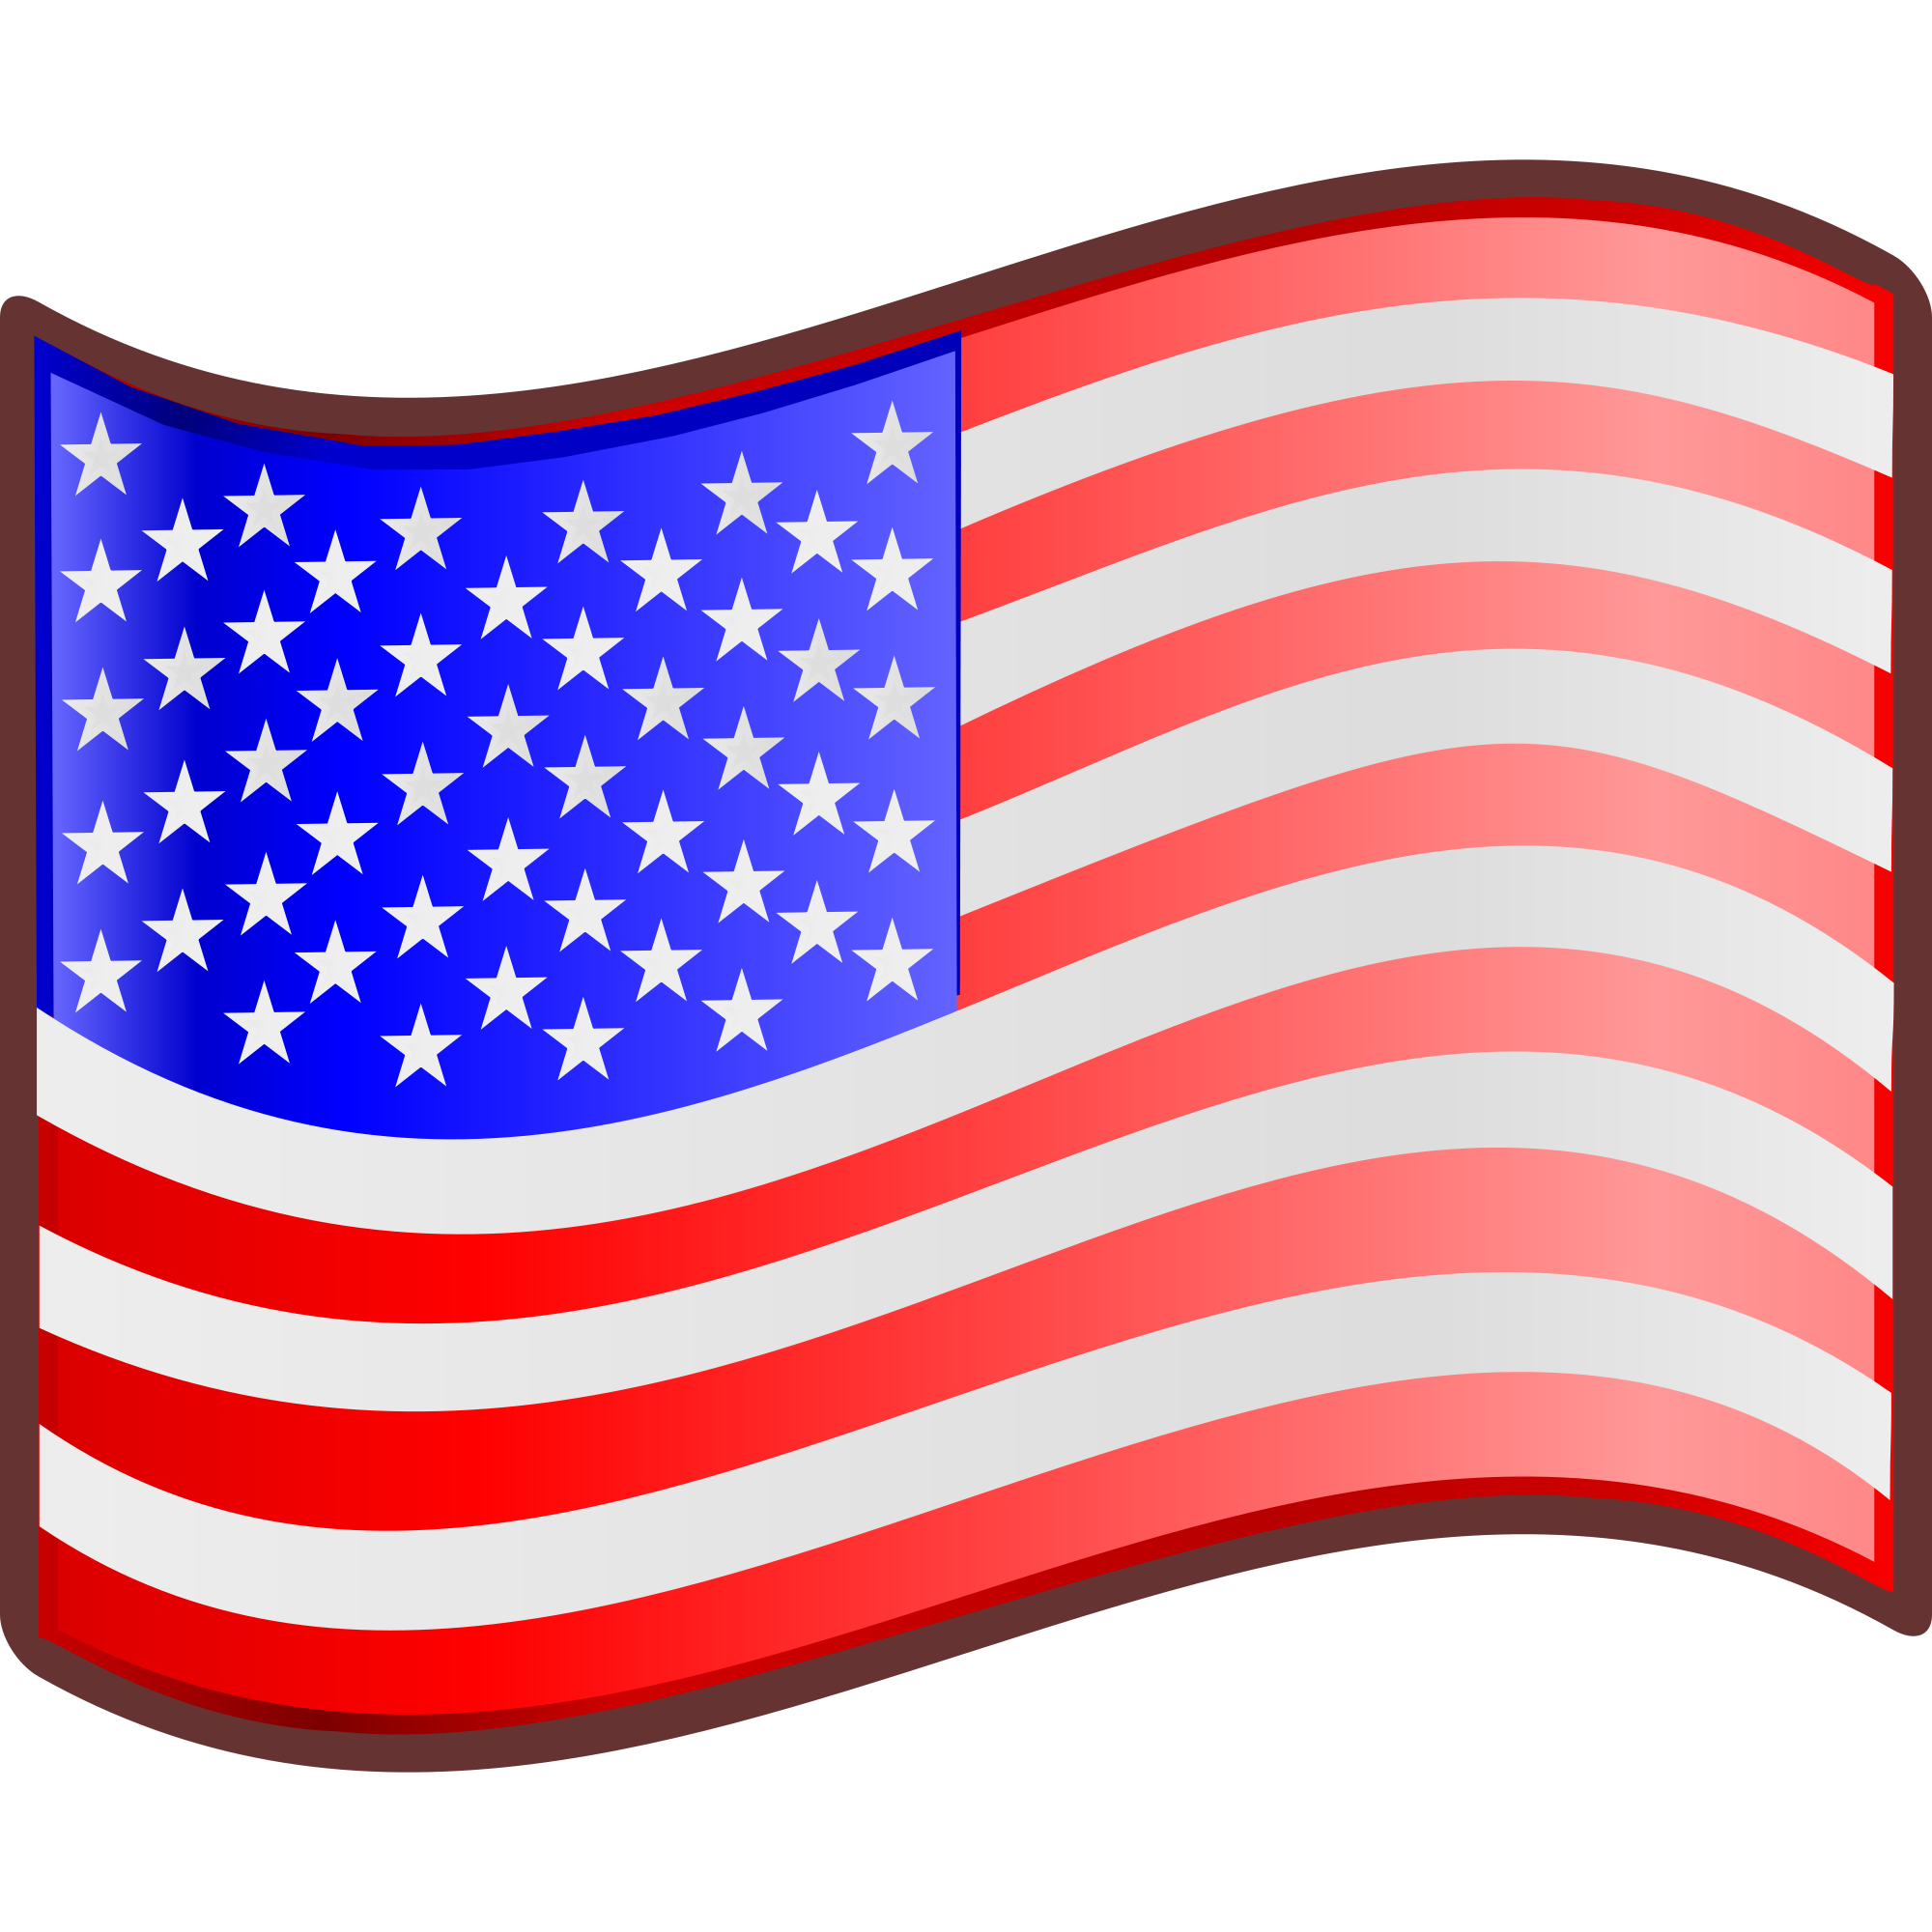 Flag of united states clipart png transparent File:Nuvola USA flag.svg - Wikimedia Commons png transparent